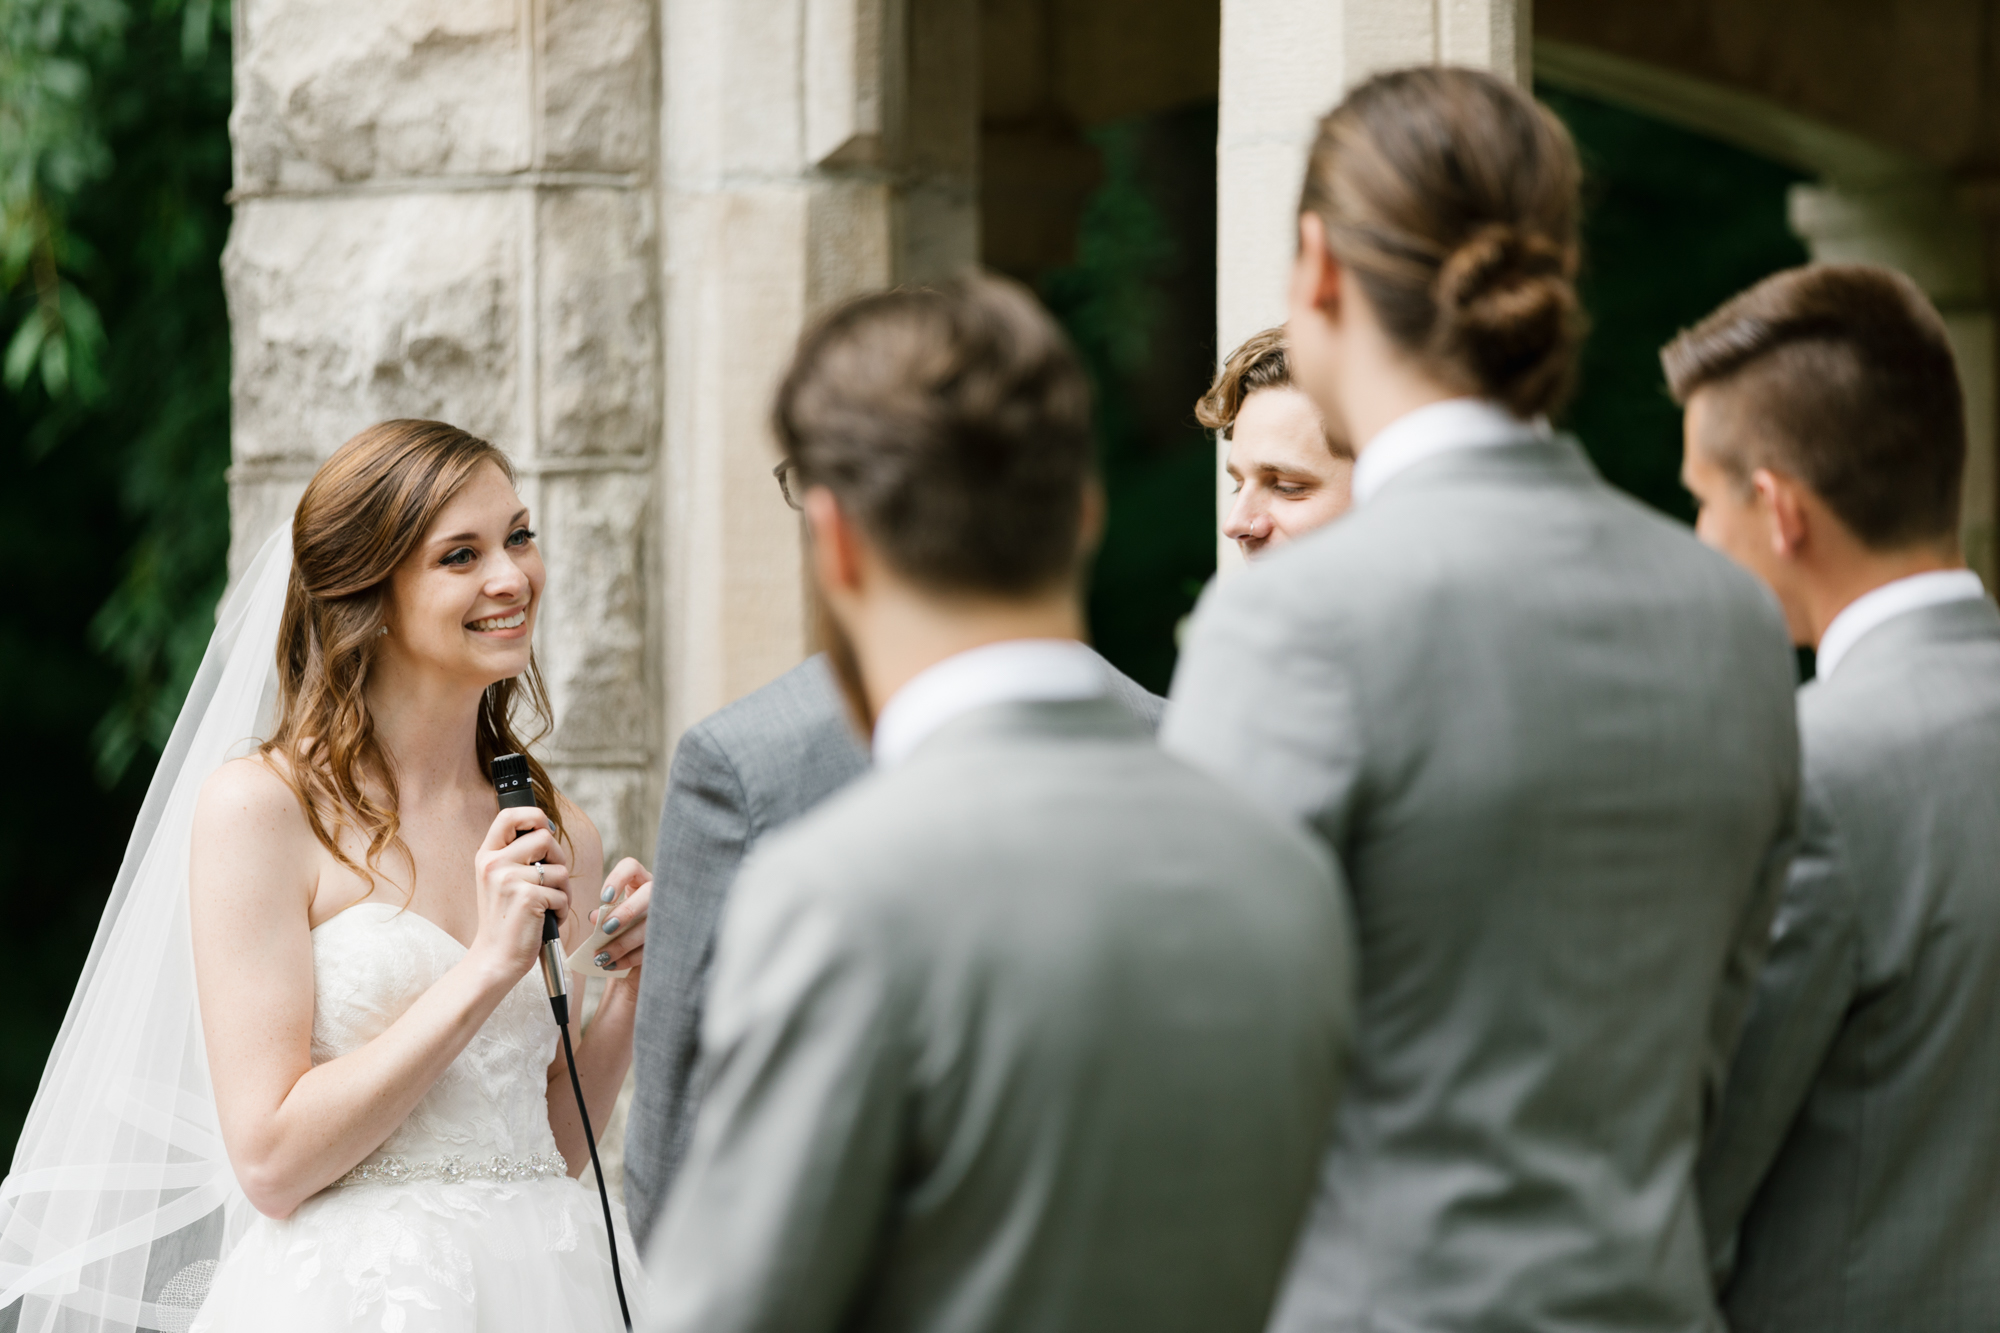 Photography of an intimate wedding ceremony at the Indiana Memorial Union at Indiana University in Bloomington, Indiana.